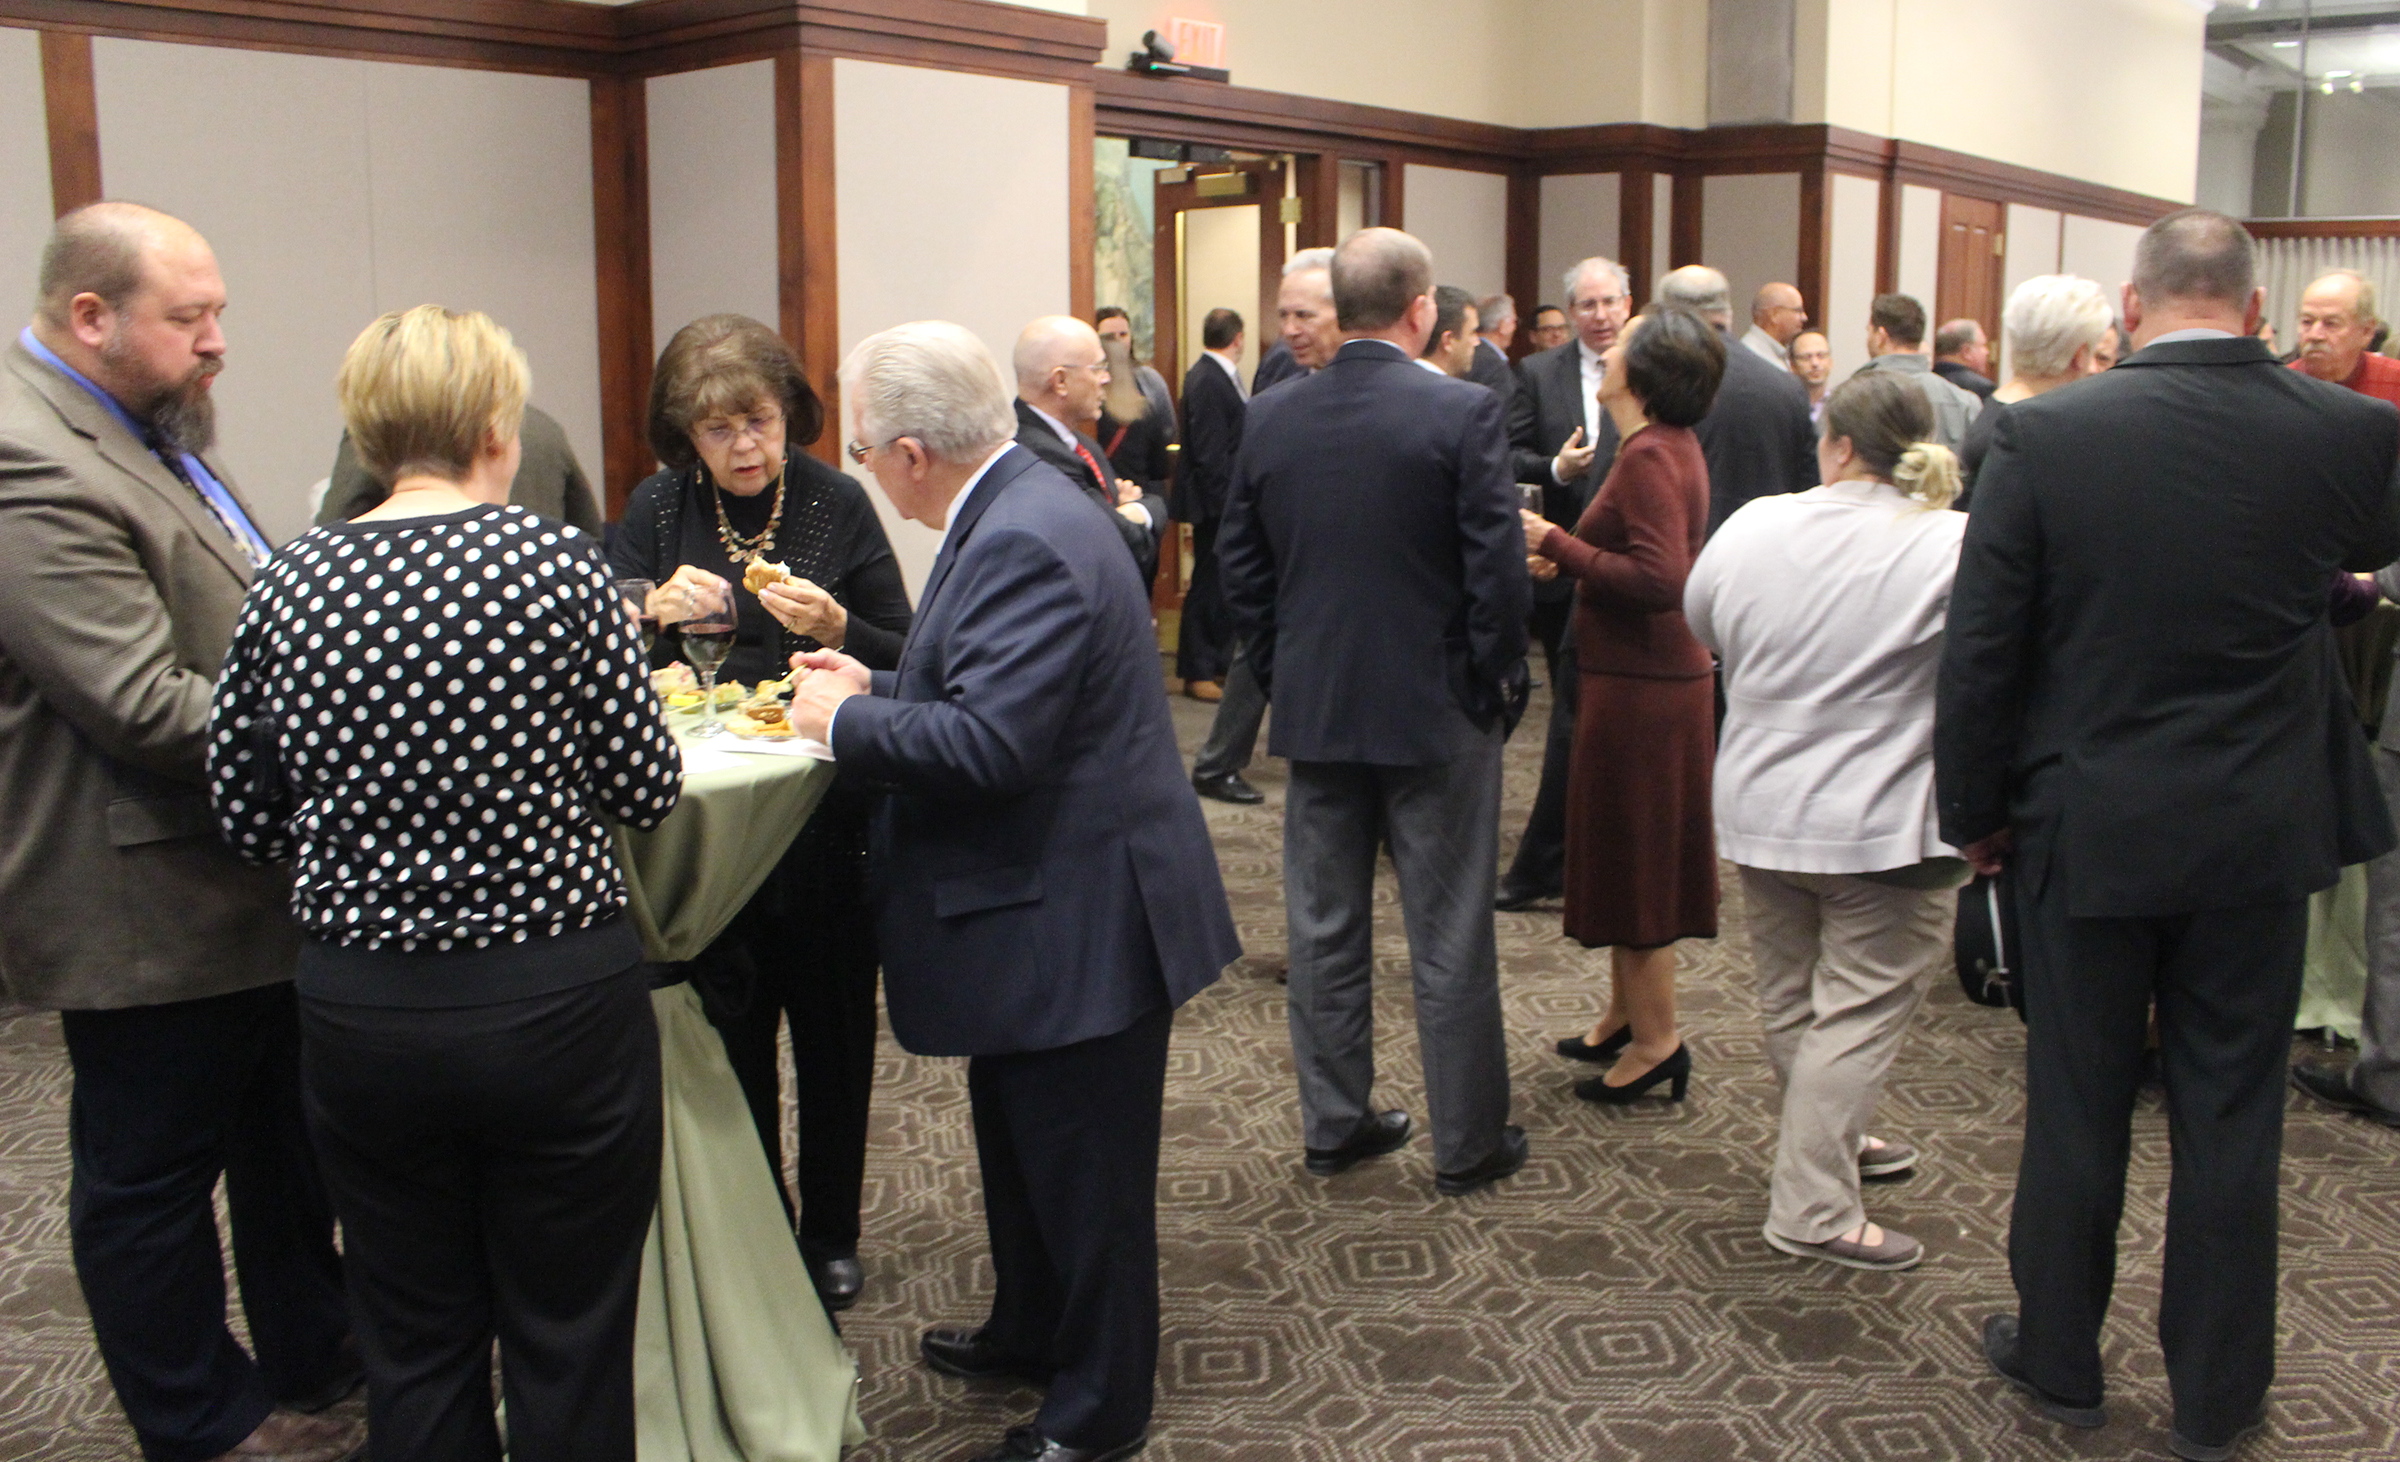 A reception was held at Kutak Rock's office in the Omaha Building following Brian C. Buescher's investiture ceremony at the Hruska Federal Courthouse on Friday, Nov. 15, 2019. (Photo by Scott Stewart)